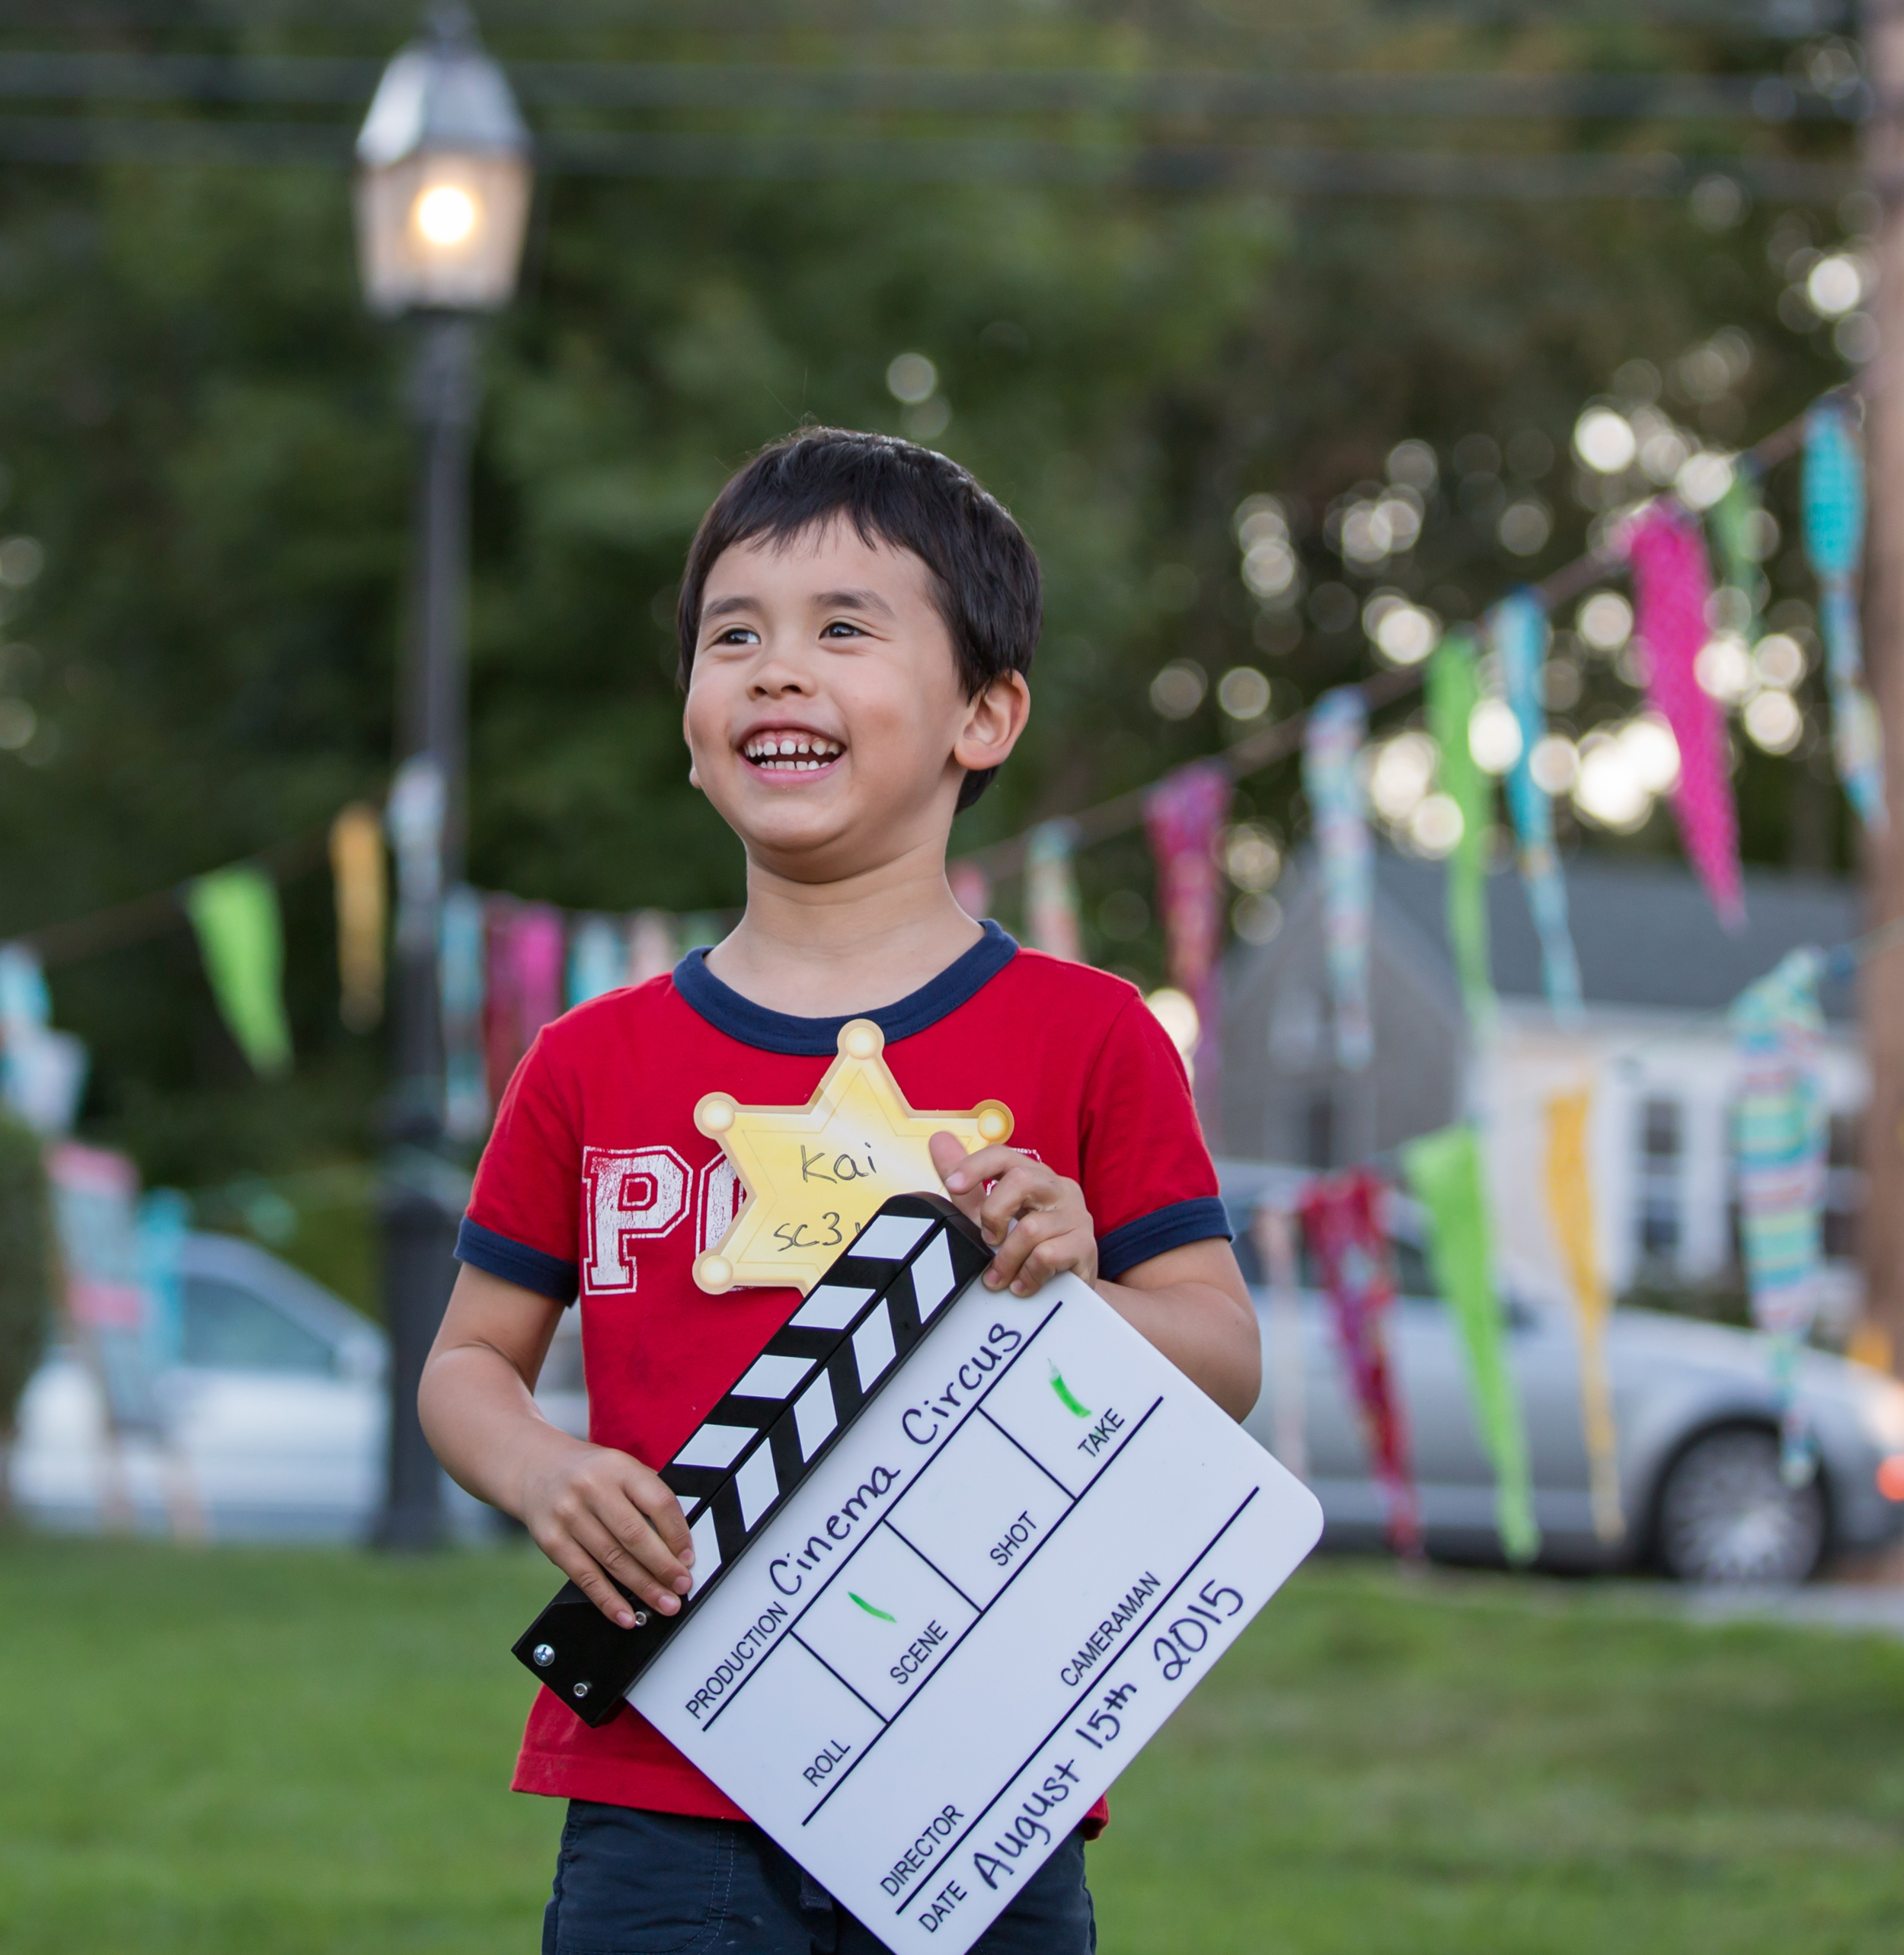 Kids film and star in a short film during the free workshop before the screening of BECOMING BULLETPROOF on August 13, 2015, at Owen Park in Vineyard Haven.Photo by Maria Thibodeau.